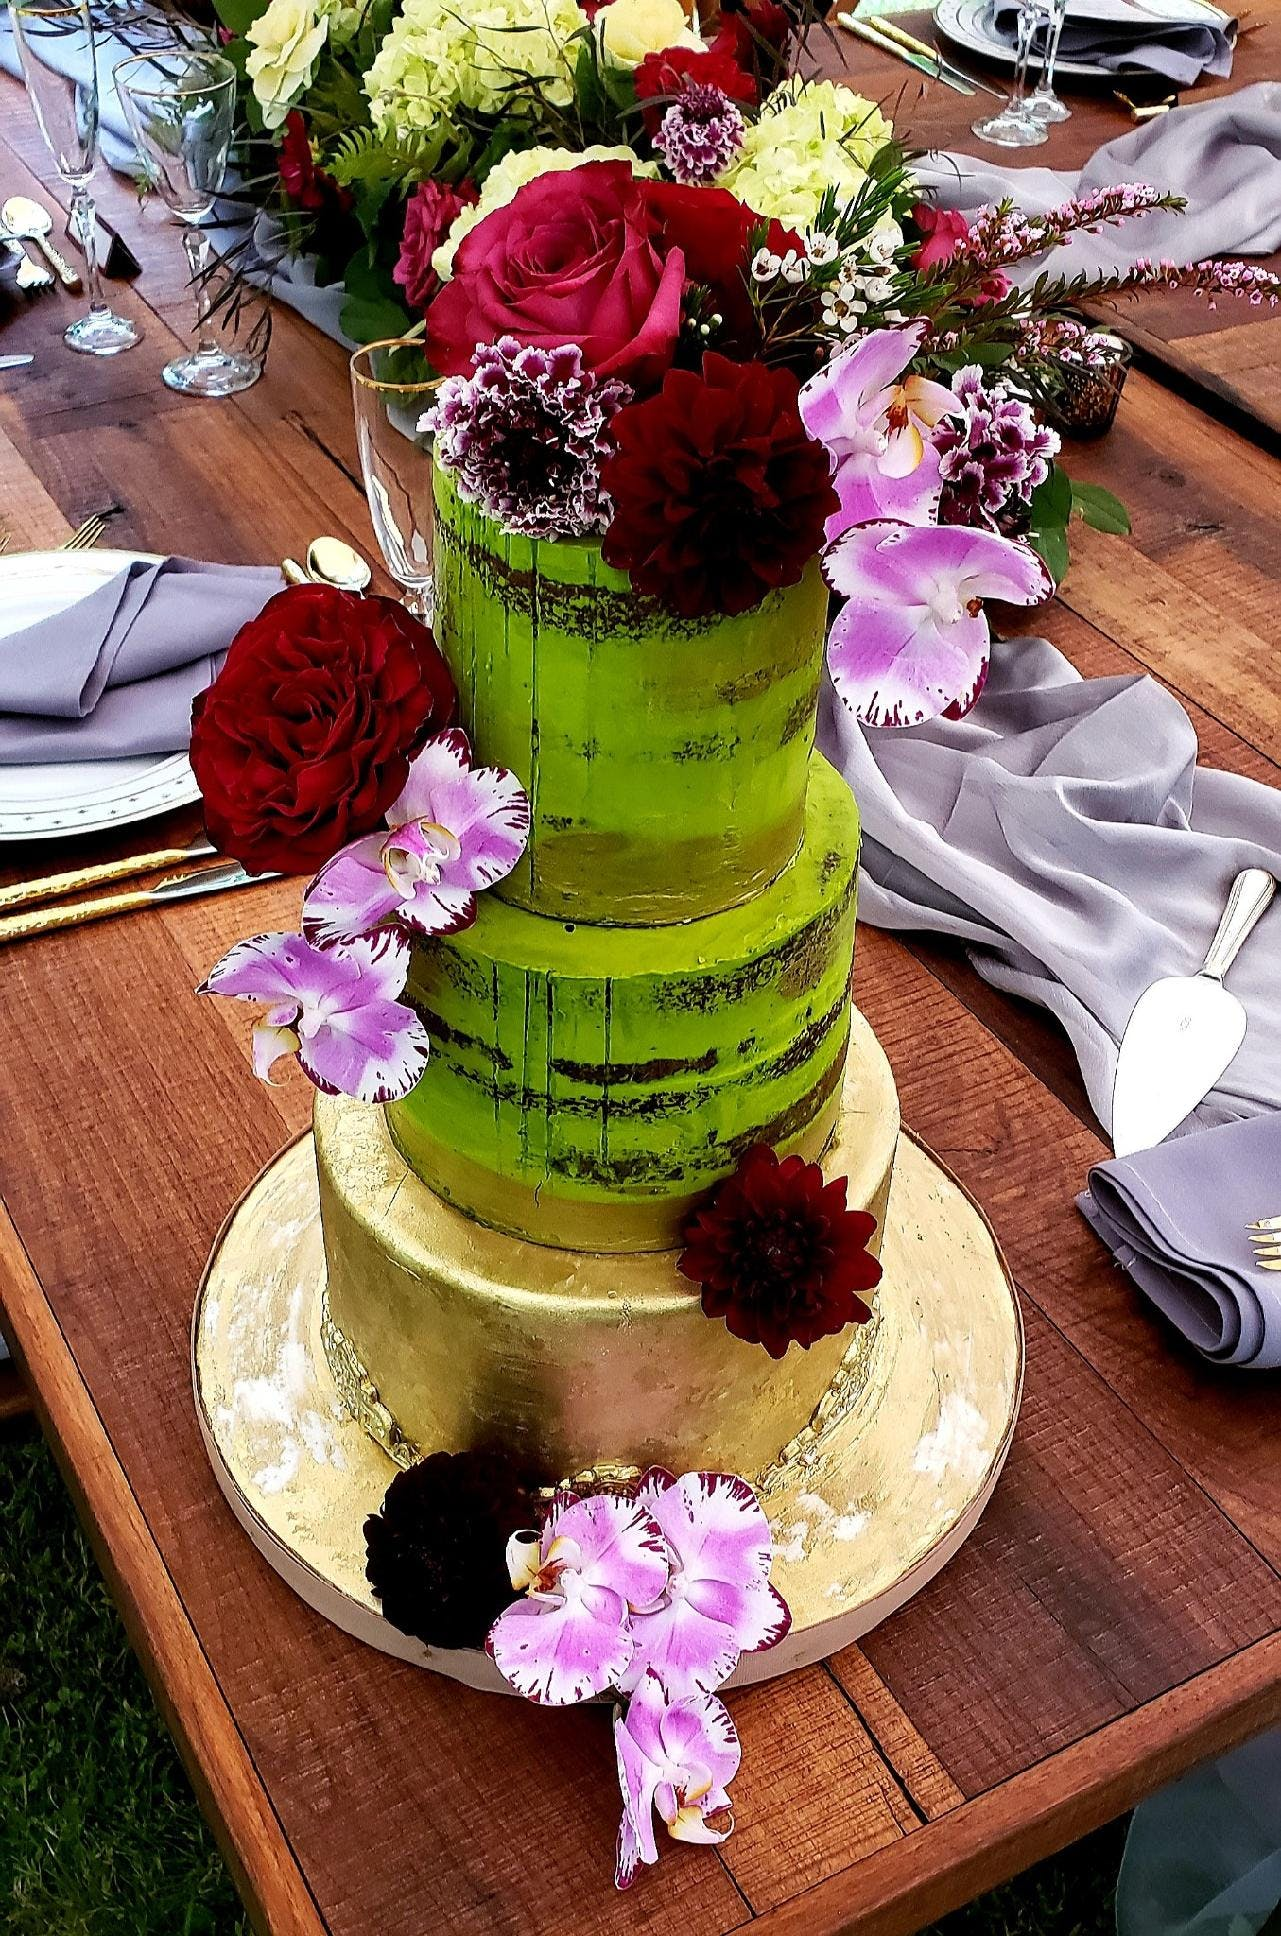 a cake sitting on top of a wooden table topped with a blue flower